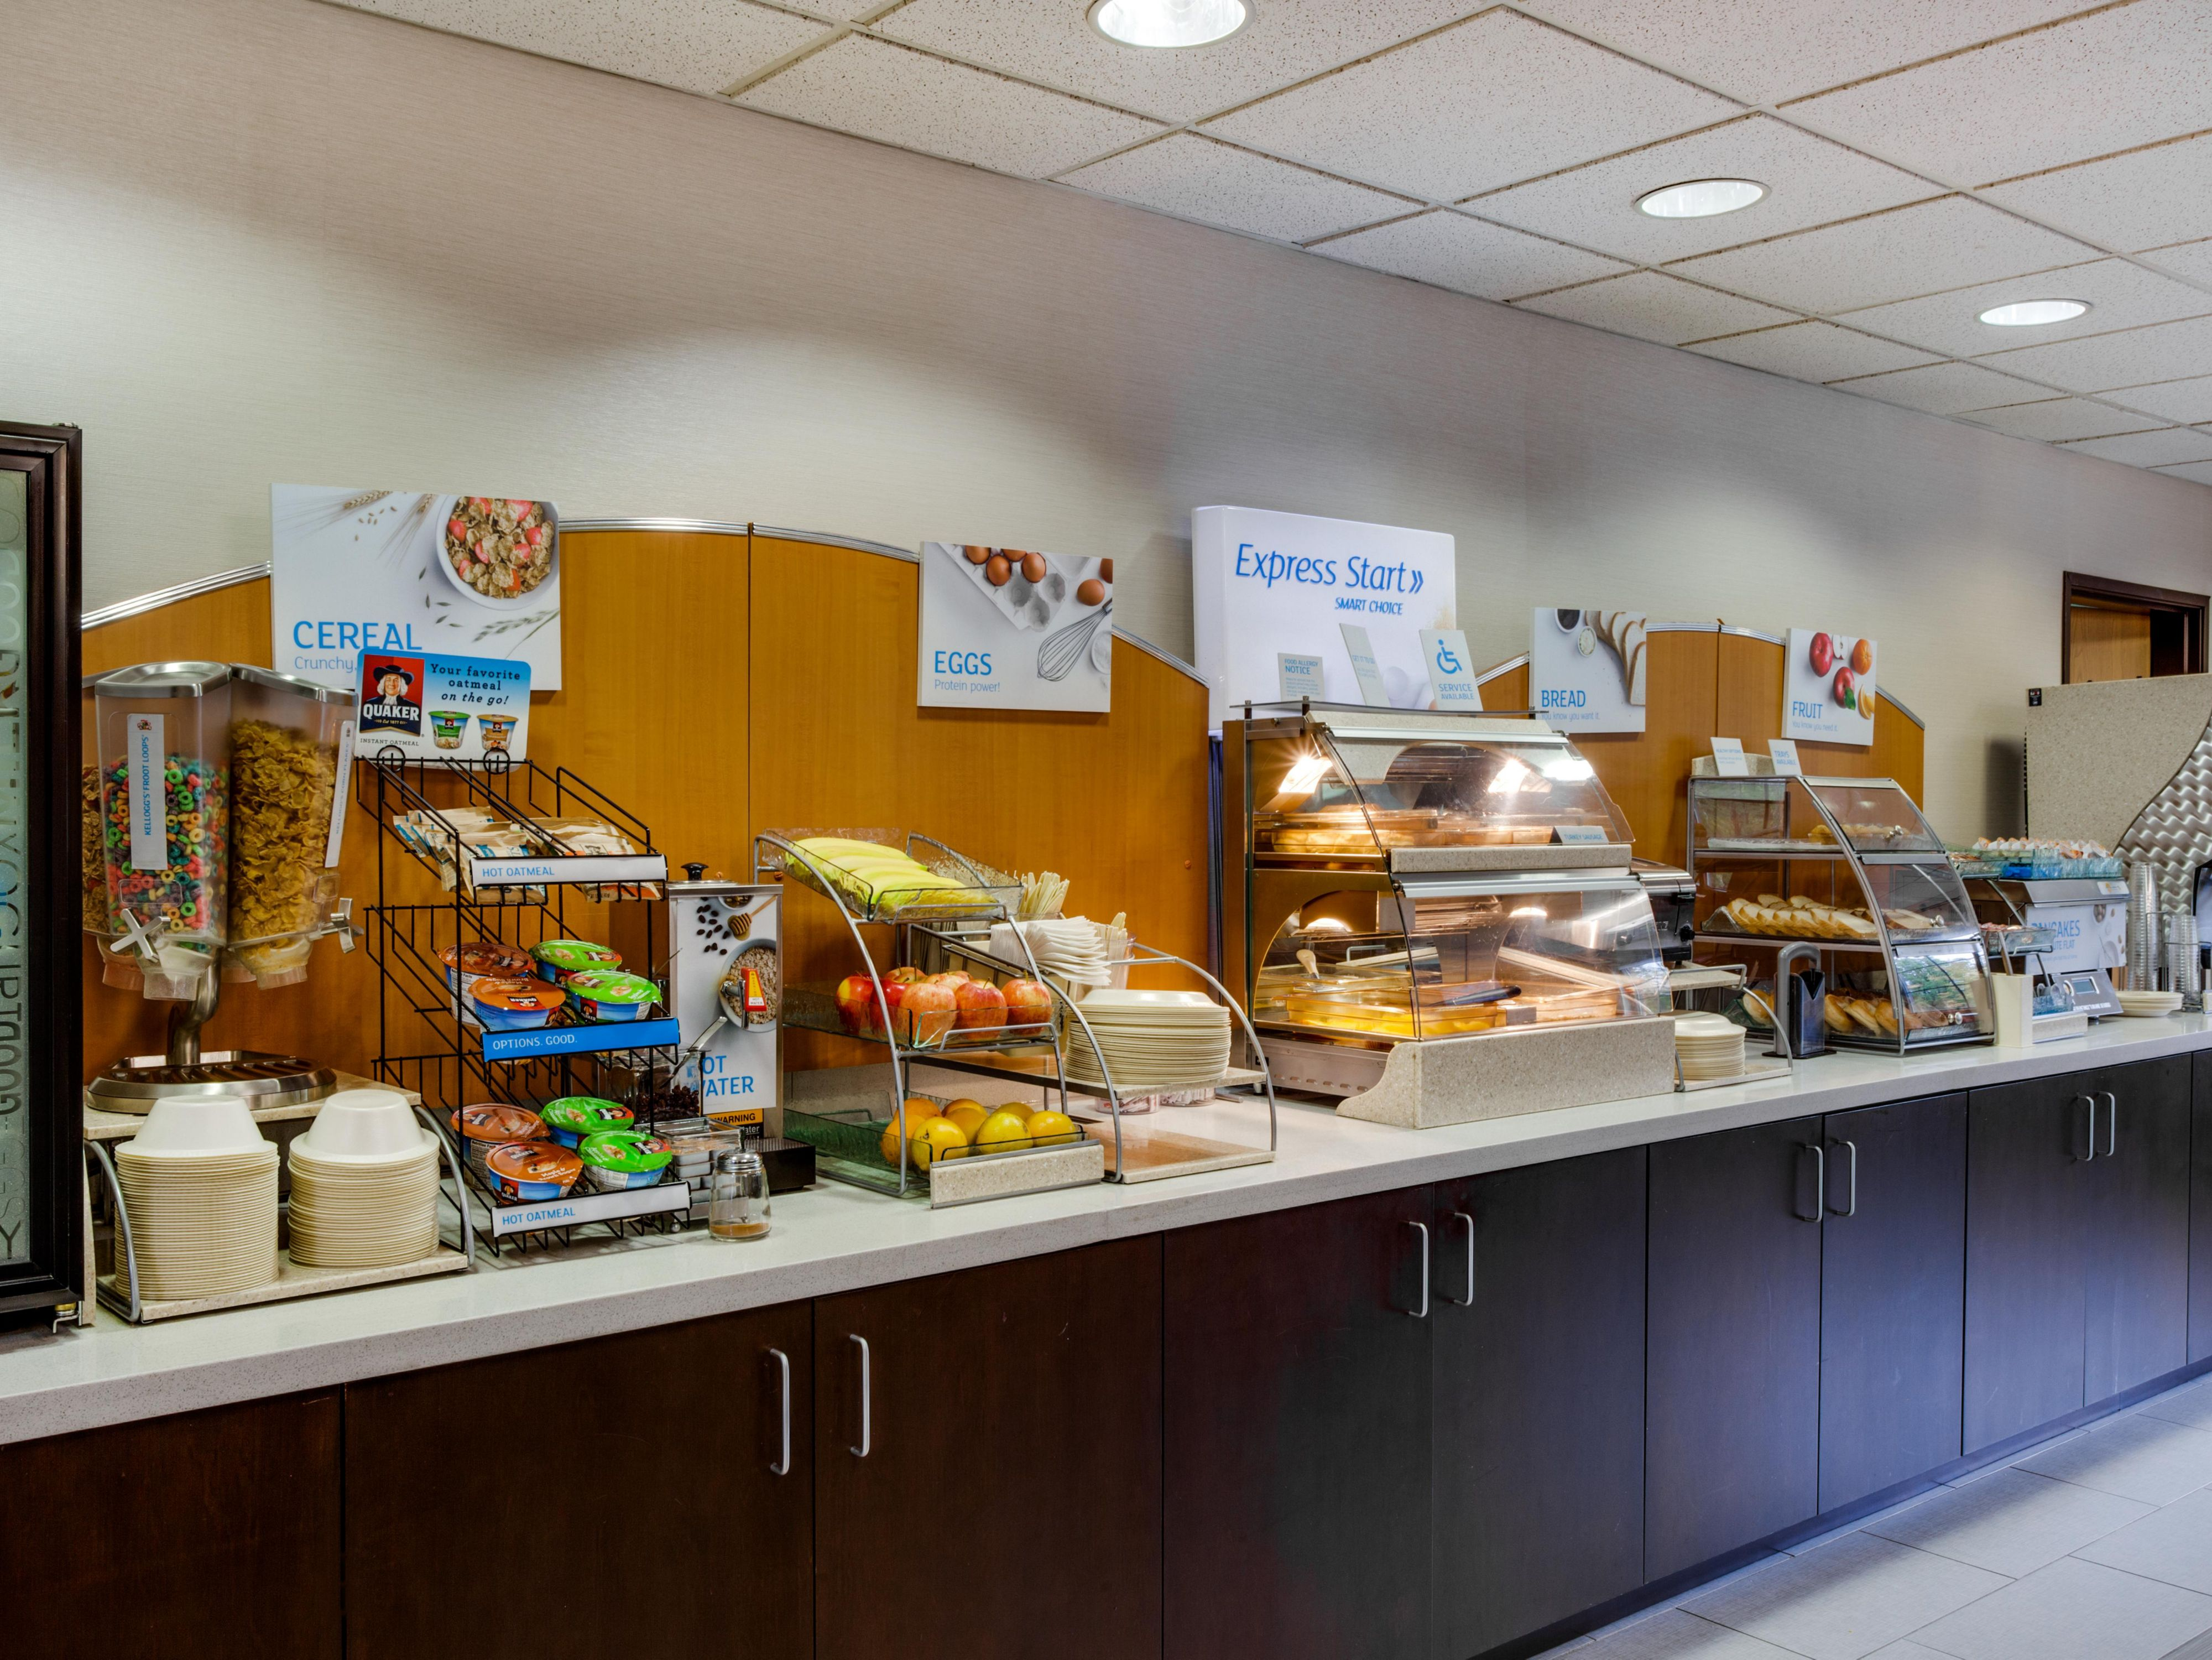 Full Buffet Breakfast with wide selection to make it a great day!